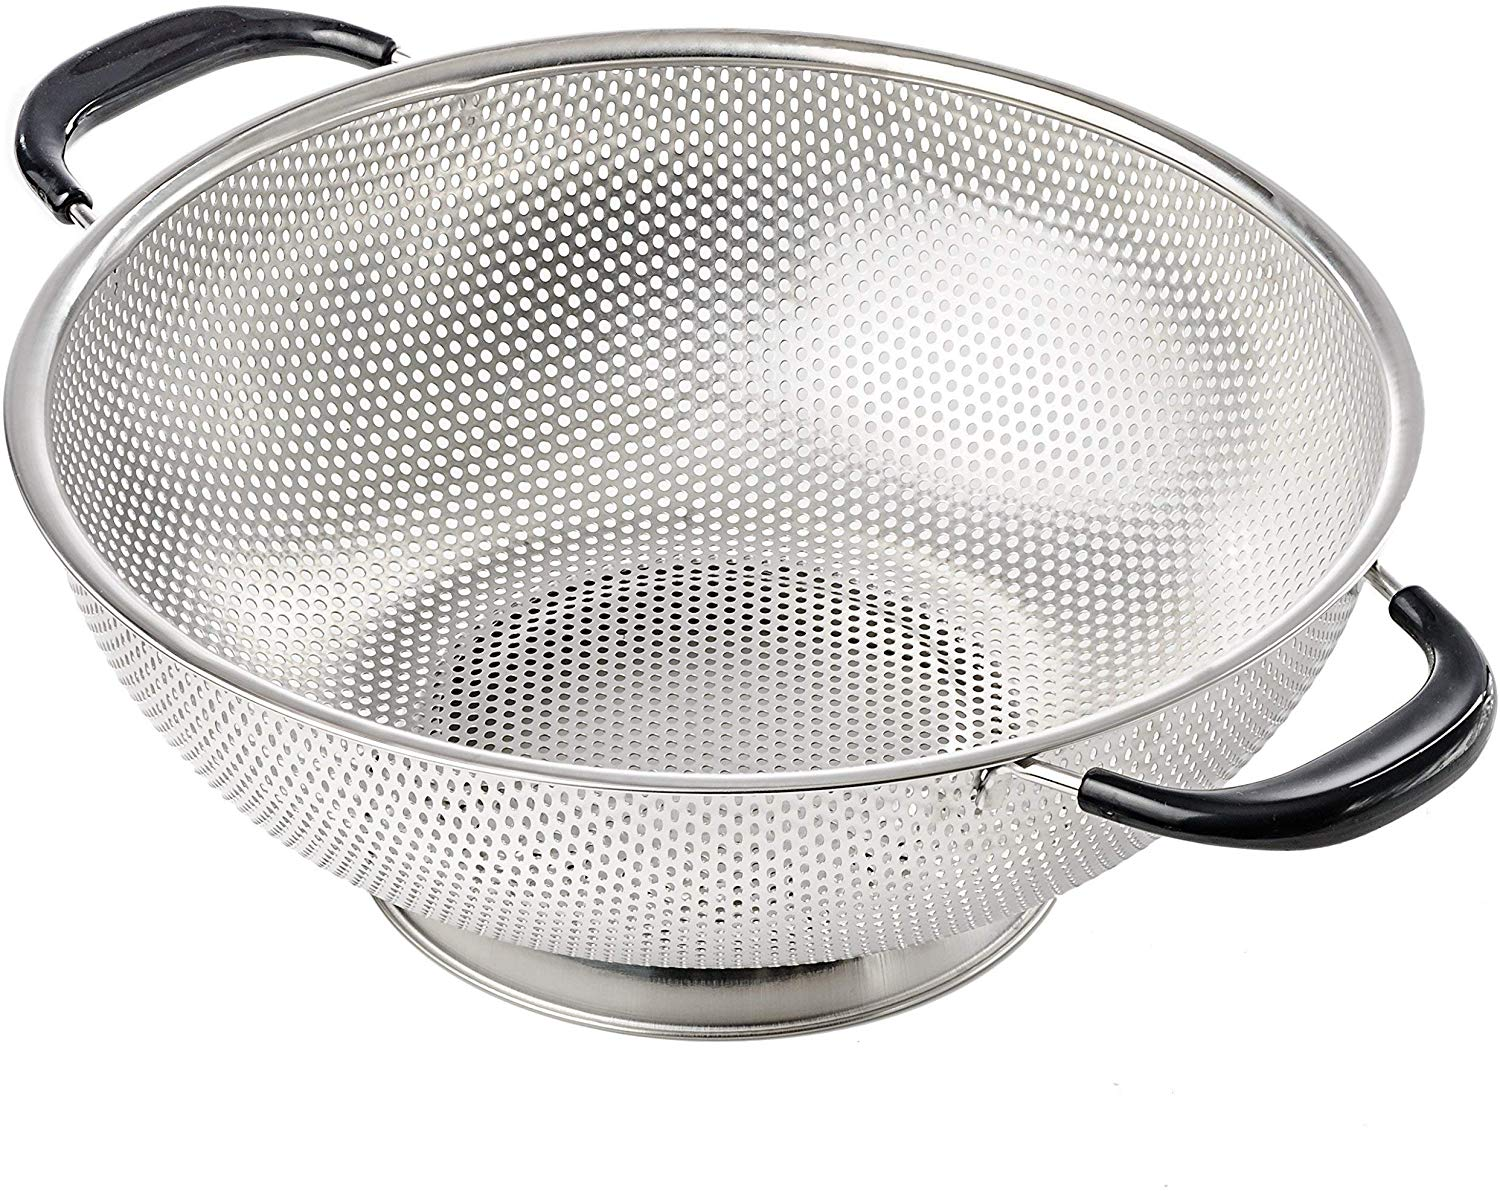 Kukpo – 5-quart high quality stainless steel colander